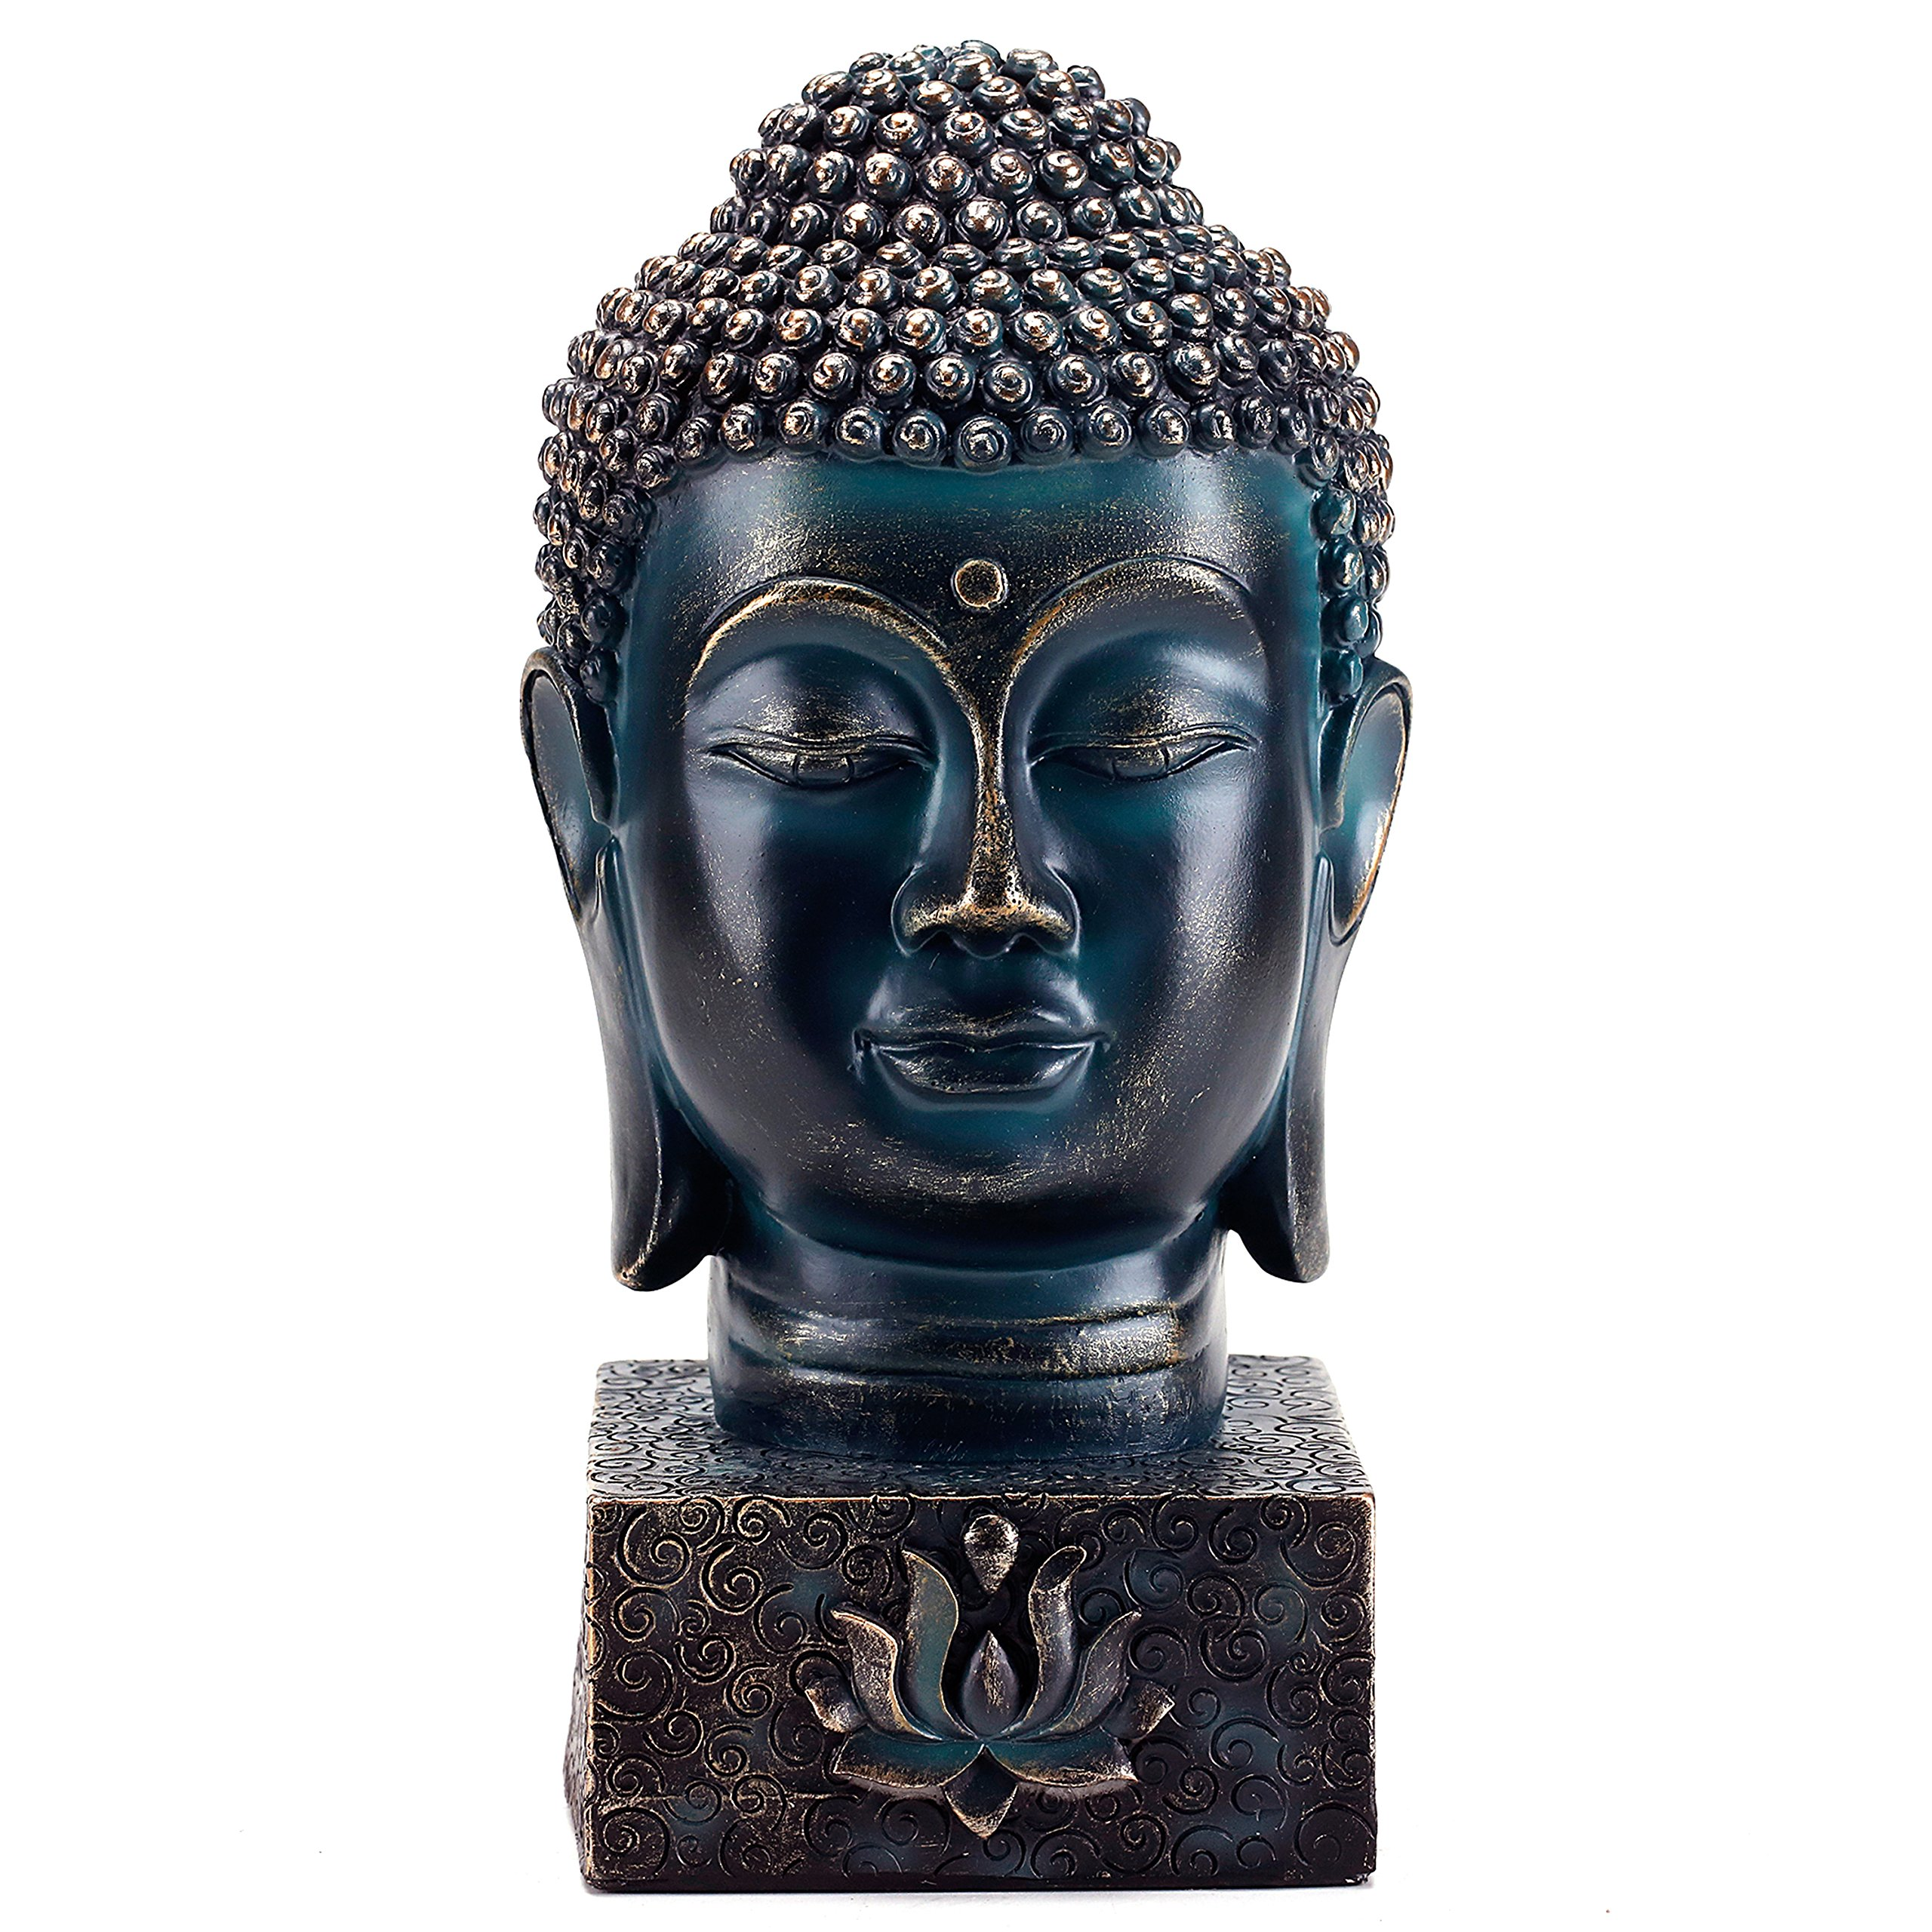 MyGift Rustic Spiritual Buddha Bust/Calming Zen Meditation Statue with Lotus Sculpted Display Base by MyGift